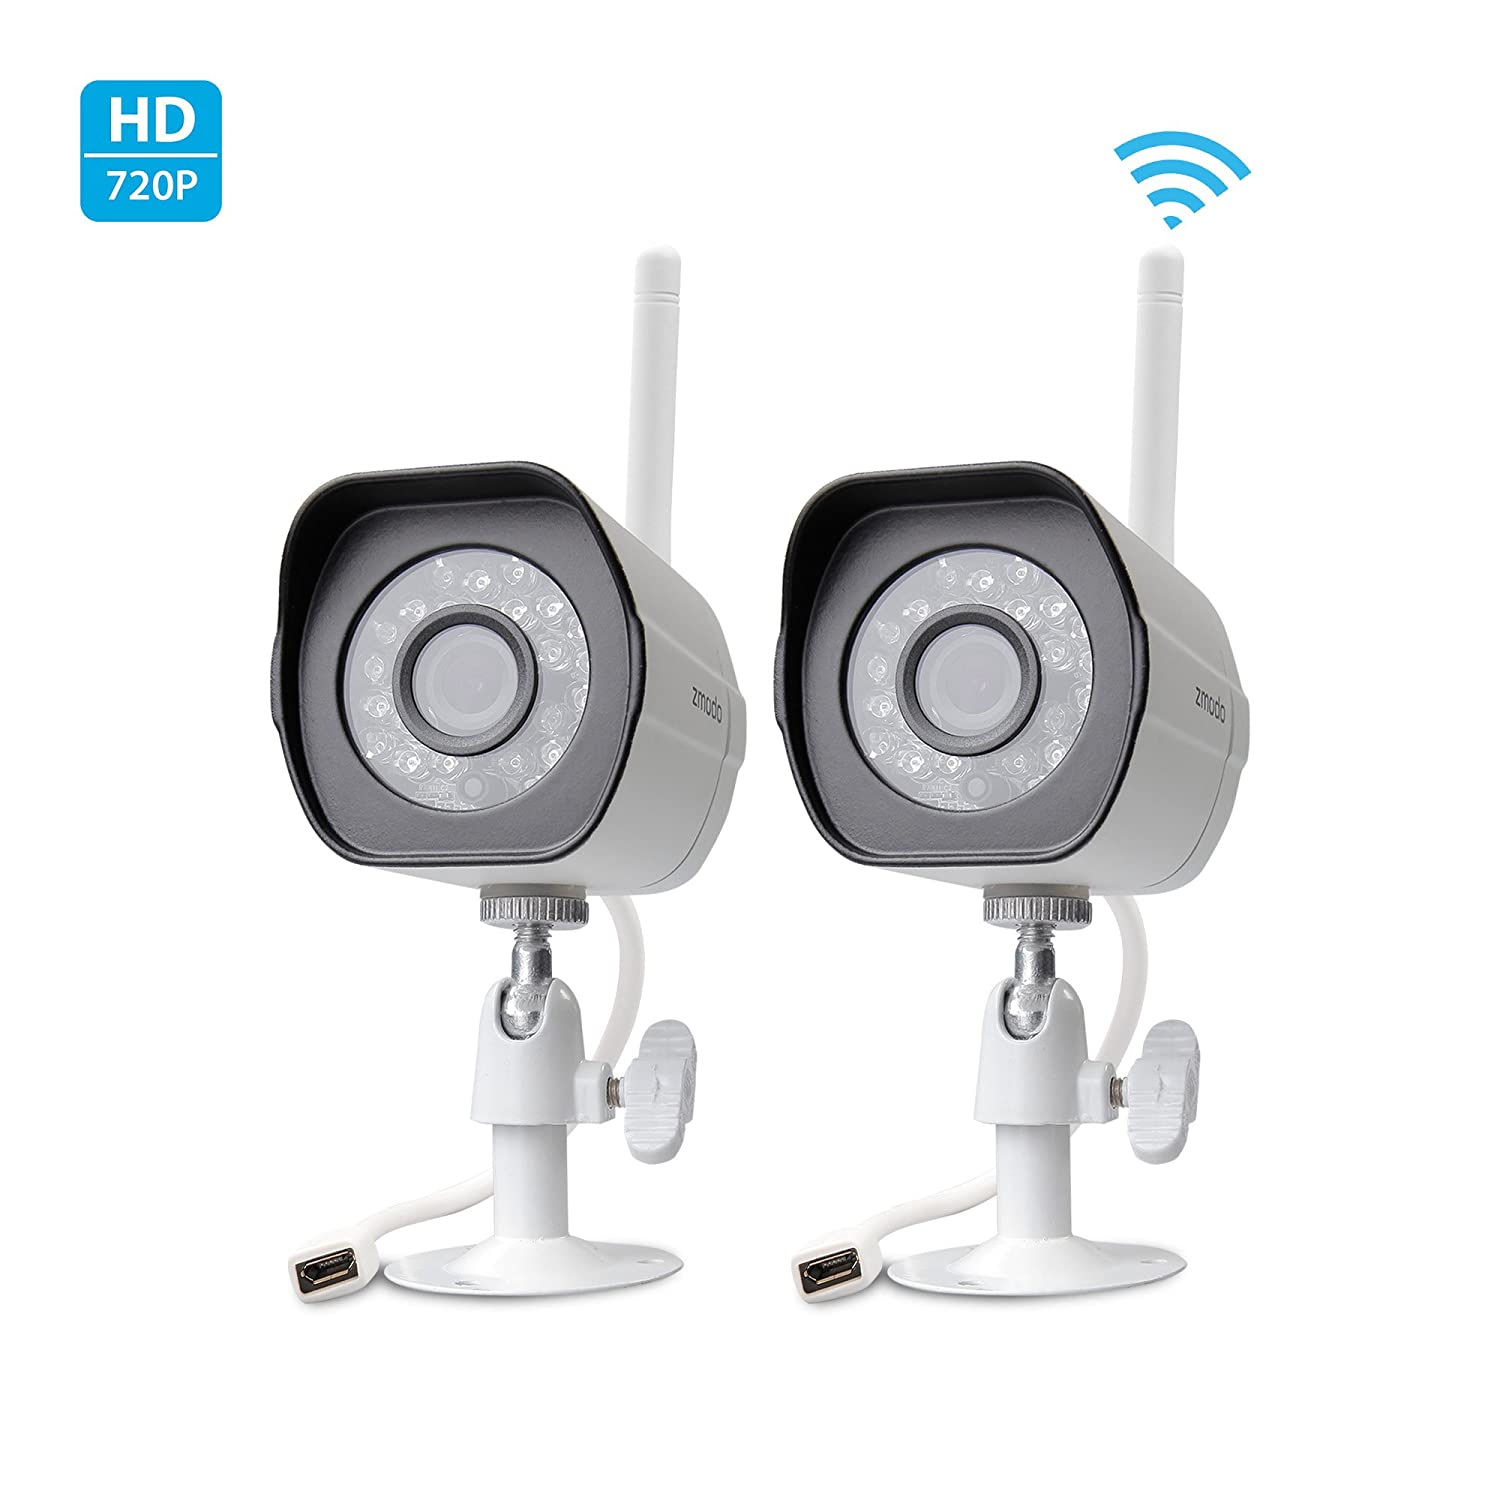 Amazon.com : Zmodo Smart Wireless Security Cameras- 2 HD Indoor ...